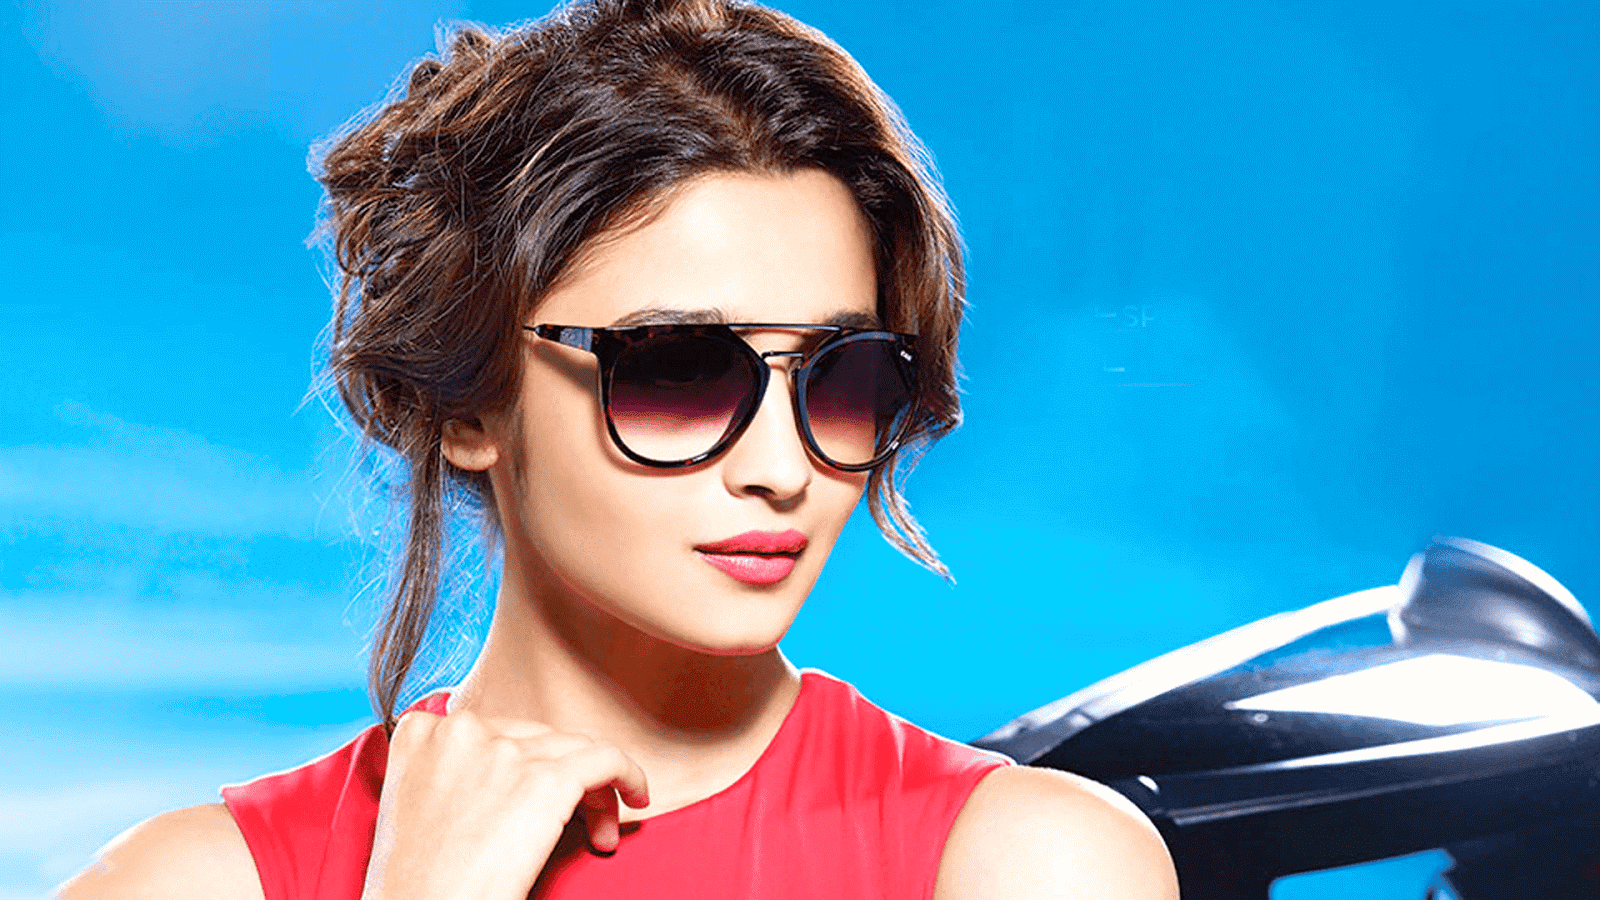 Alia bhatt hot and spicy images wallpapers - Alia Bhatt Hot Sexy Photos Hot Sexy Images